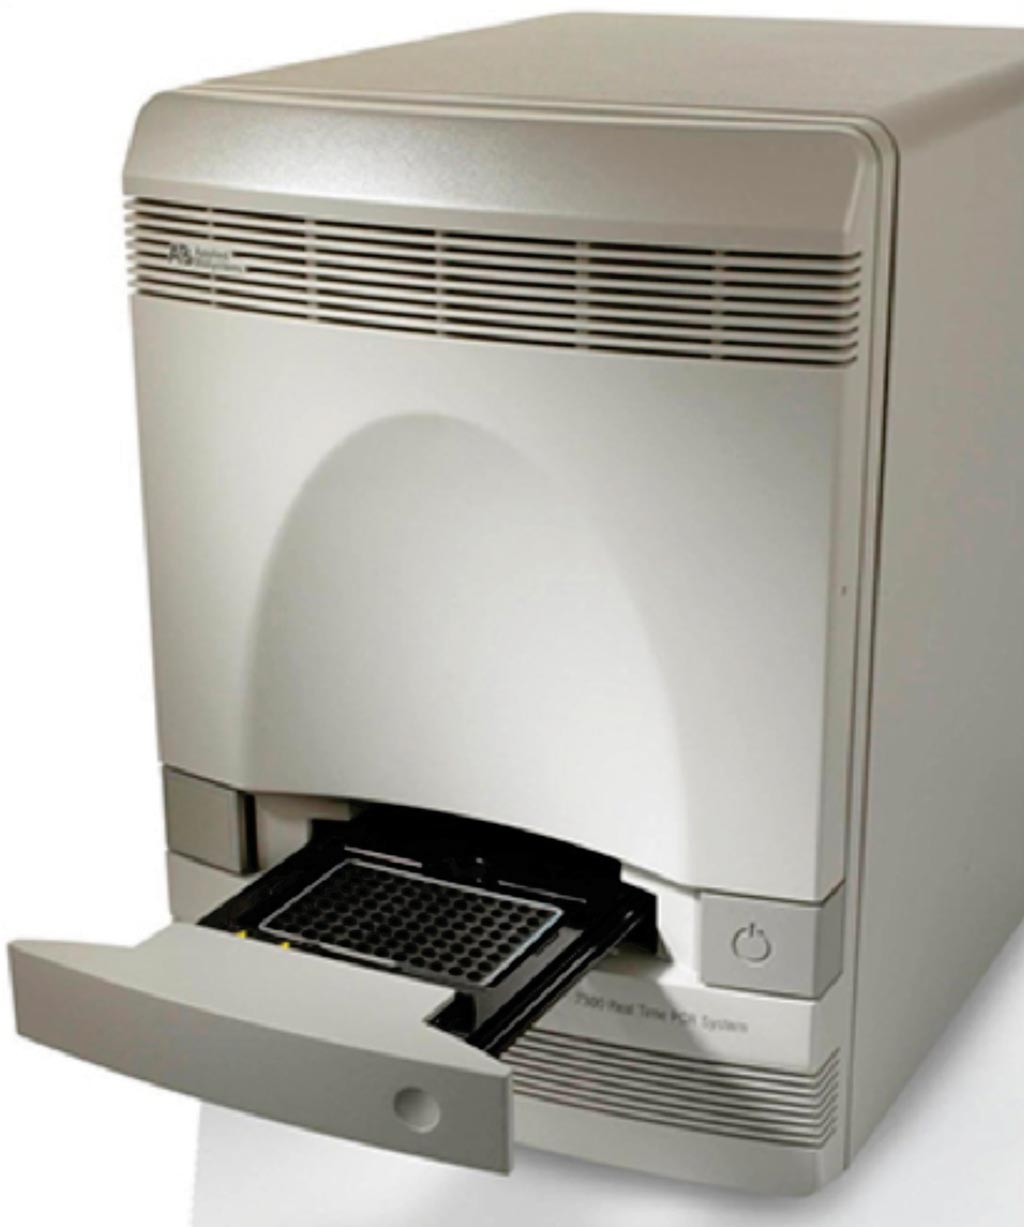 Image: The ABI 7300 real-time PCR system (Photo courtesy of Applied Biosystems).